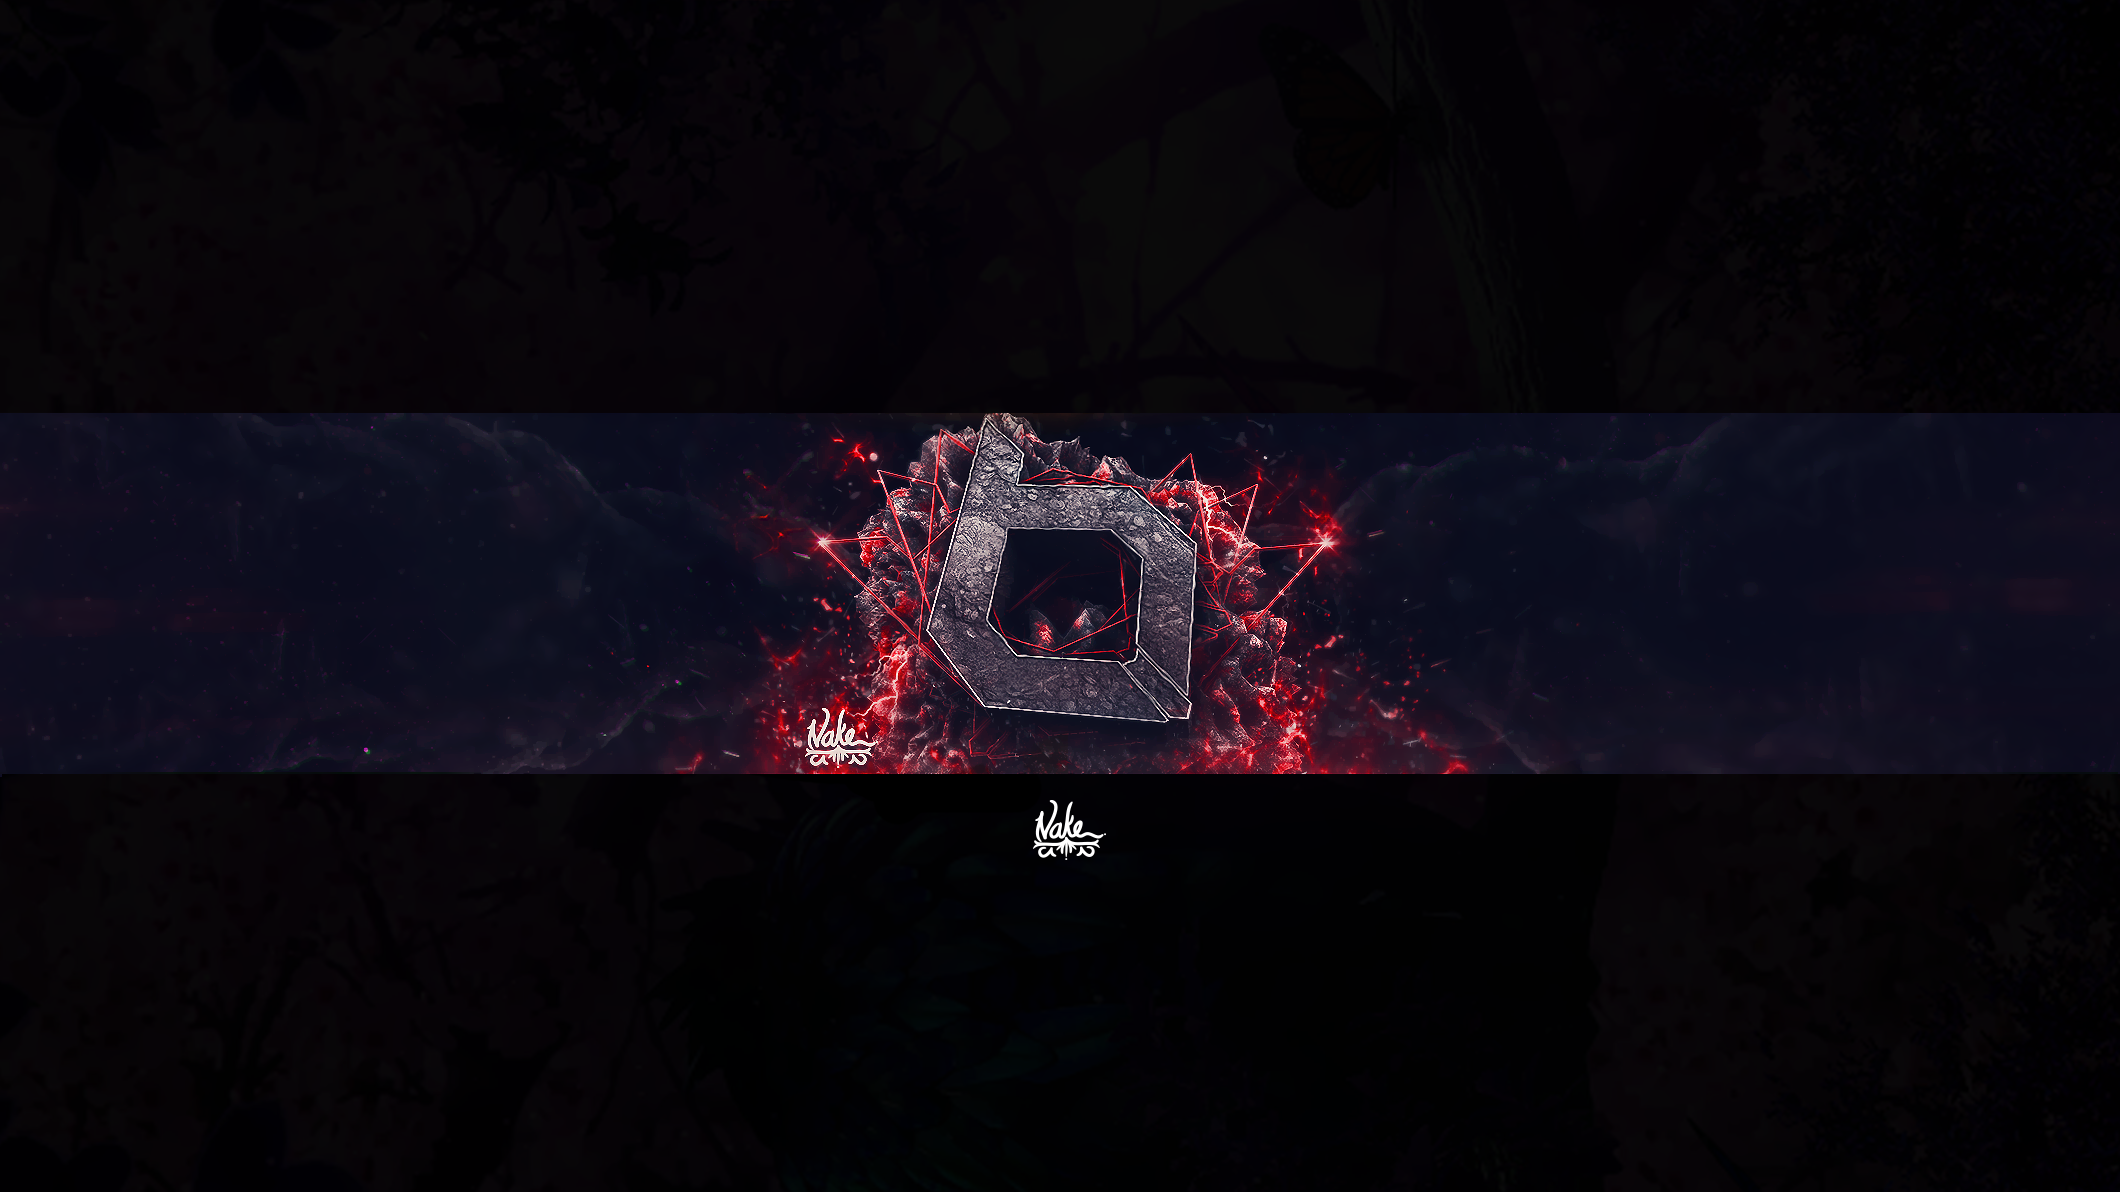 Obey by Nakeswag